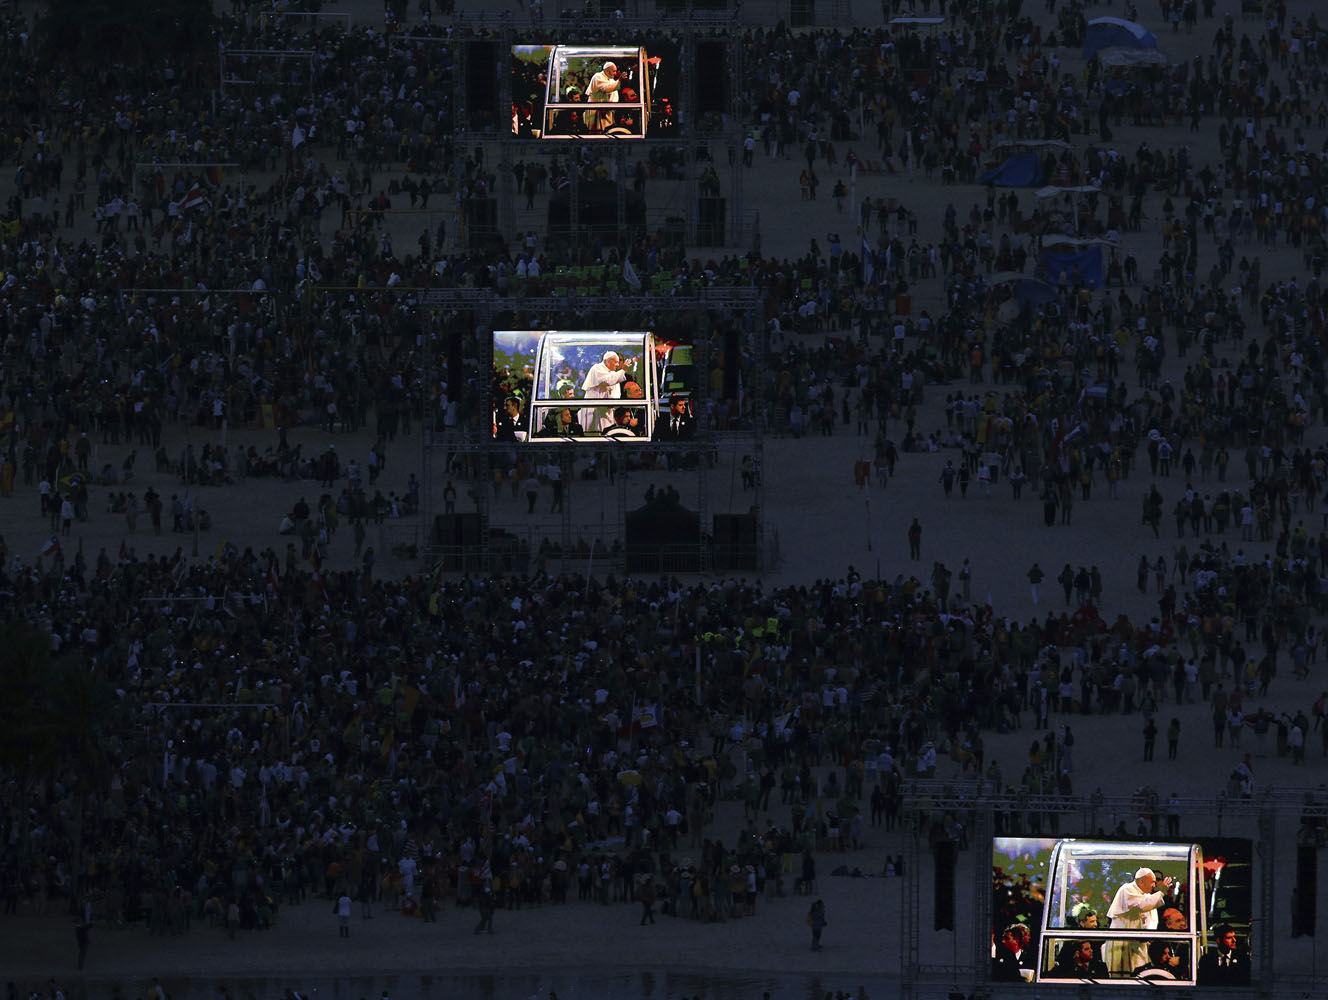 Images of Pope Francis projected onto screens at Copacabana beach in Rio de Janeiro.